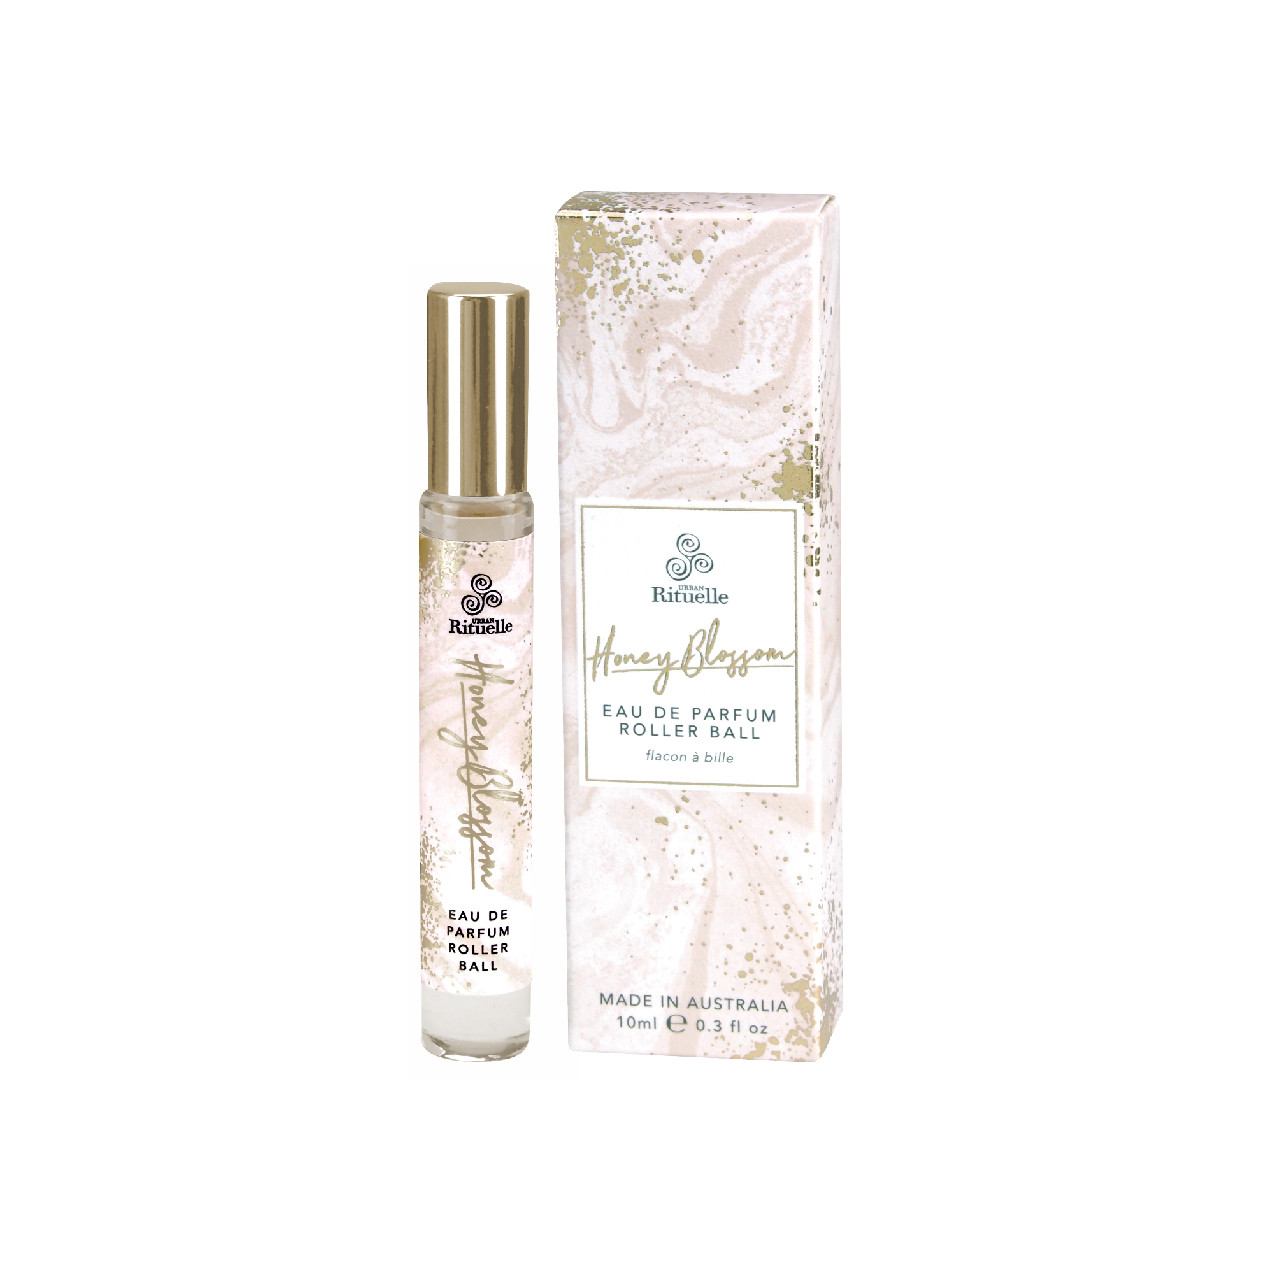 Sweet Treats - Honey Blossom - Eau De Parfum Roller Ball -  Urban Rituelle